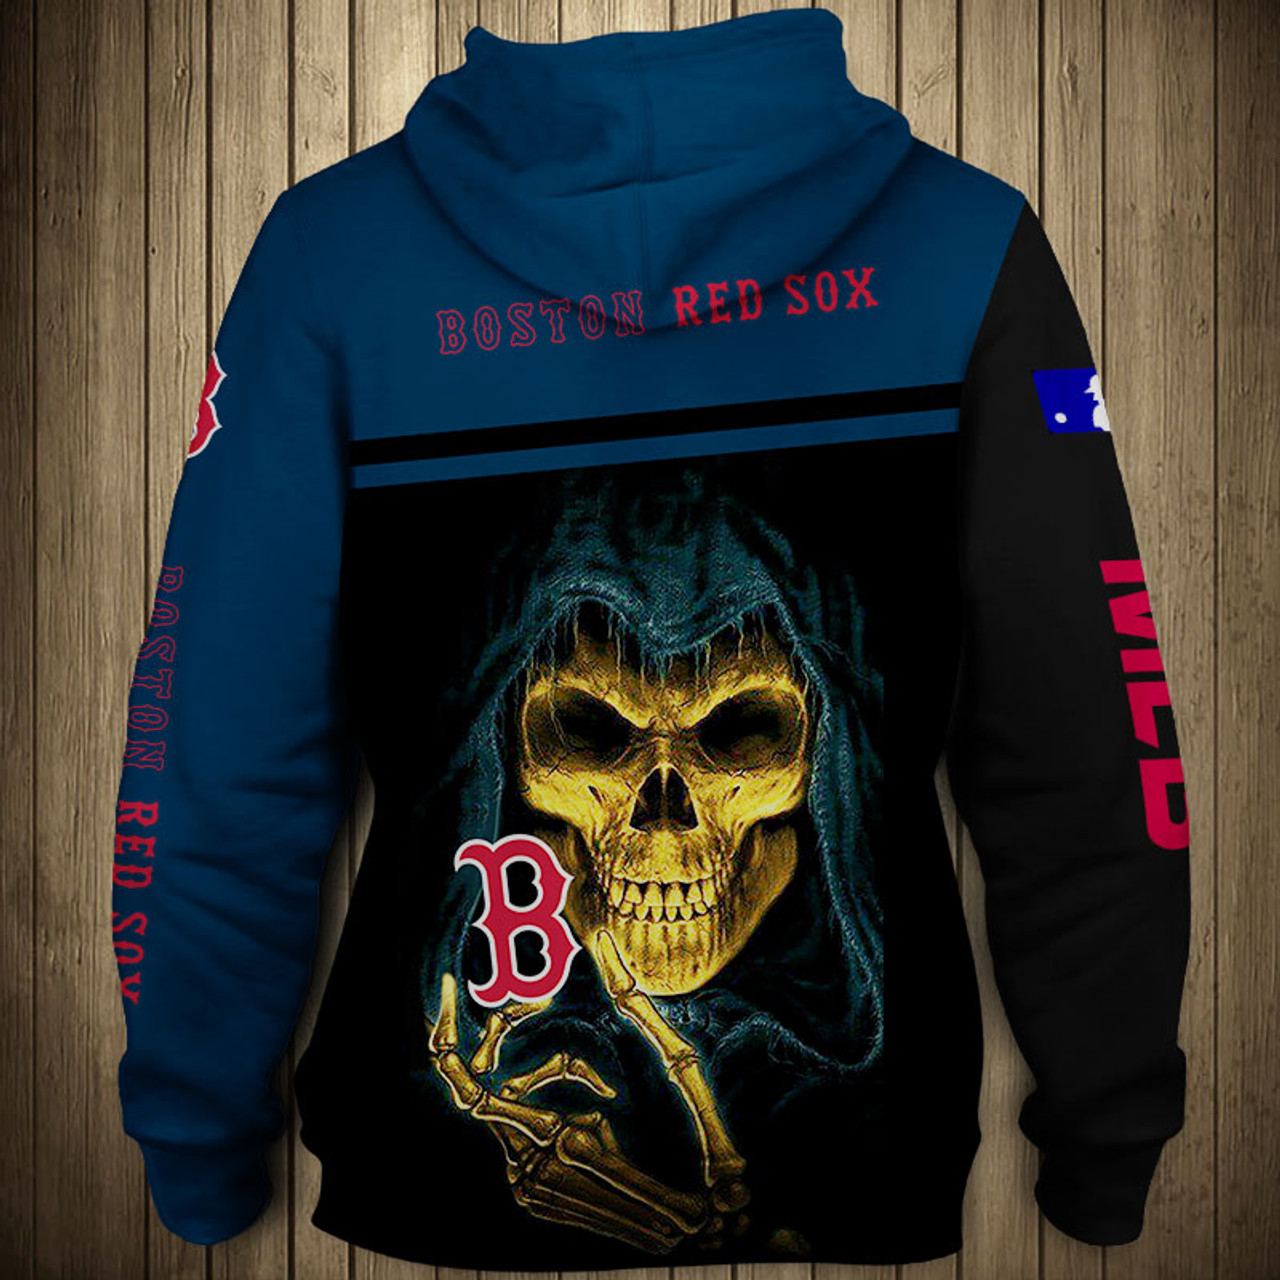 **(OFFICIAL-M.L.B.BOSTON-RED-SOXS-TEAM-ZIPPERED-HOODIES/NICE-CUSTOM-DETAILED-3D-GRAPHIC-PRINTED/PREMIUM-ALL-OVER-DOUBLE-SIDED-PRINT/OFFICIAL-RED-SOXS-TEAM-COLORS & CLASSIC-RED-SOXS-3D-GRAPHIC-LOGOS/TRENDY-NEW-PREMIUM-ZIPPERED-M.L.B.HOODIES)**